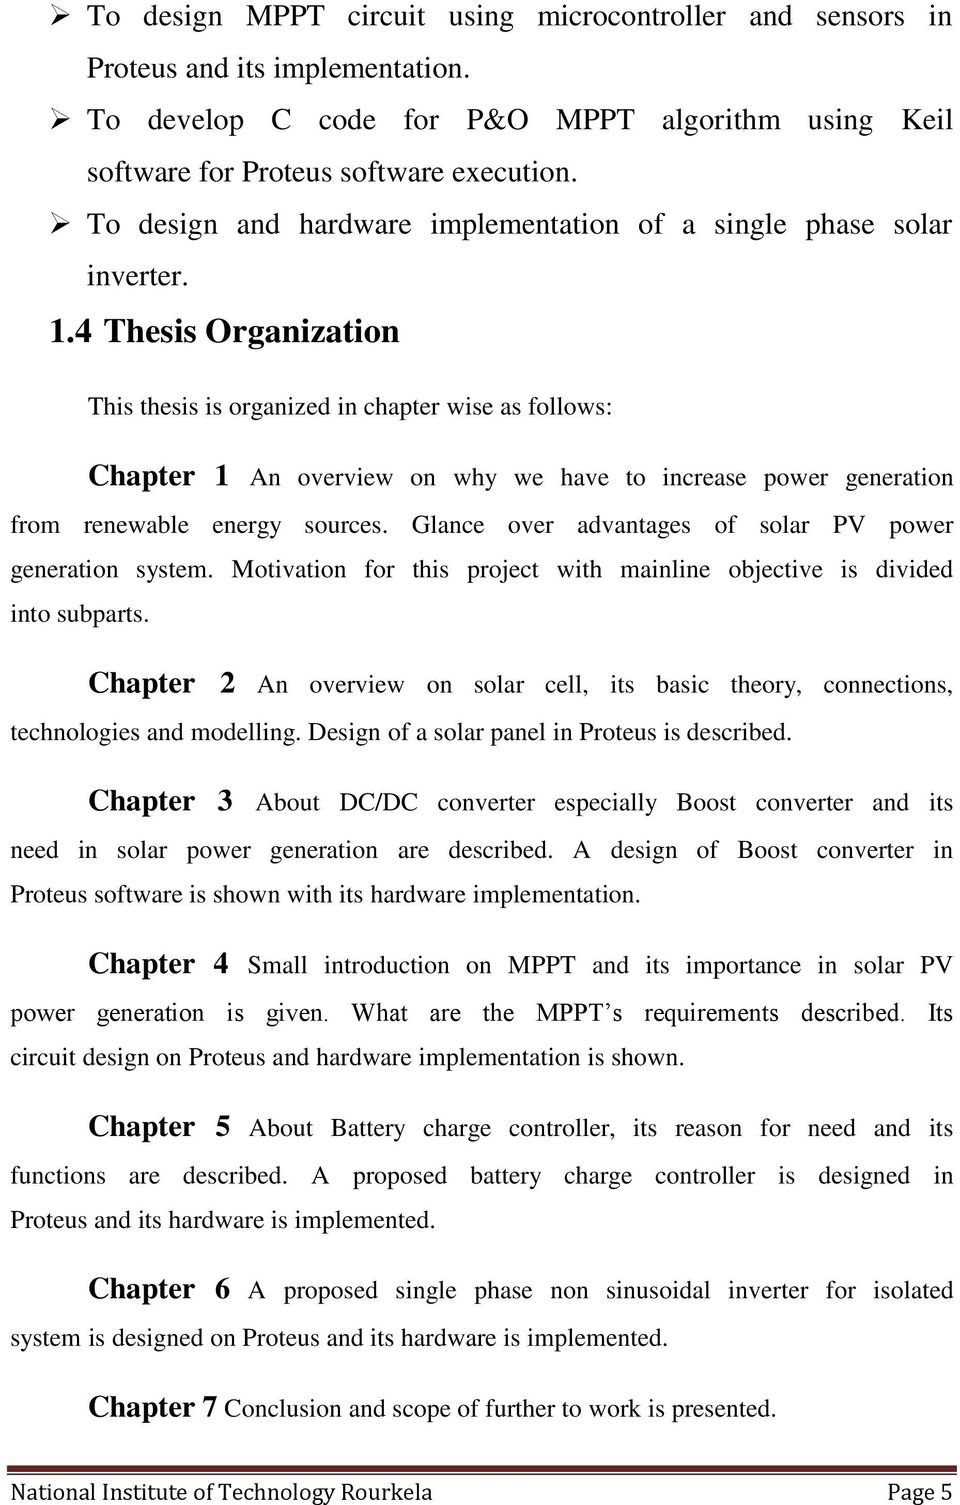 Design And Implementation Of An Isolated Solar Photovoltaic Power Boost Converter Circuit 4 Thesis Organization This Is Organized In Chapter Wise As Follows 1